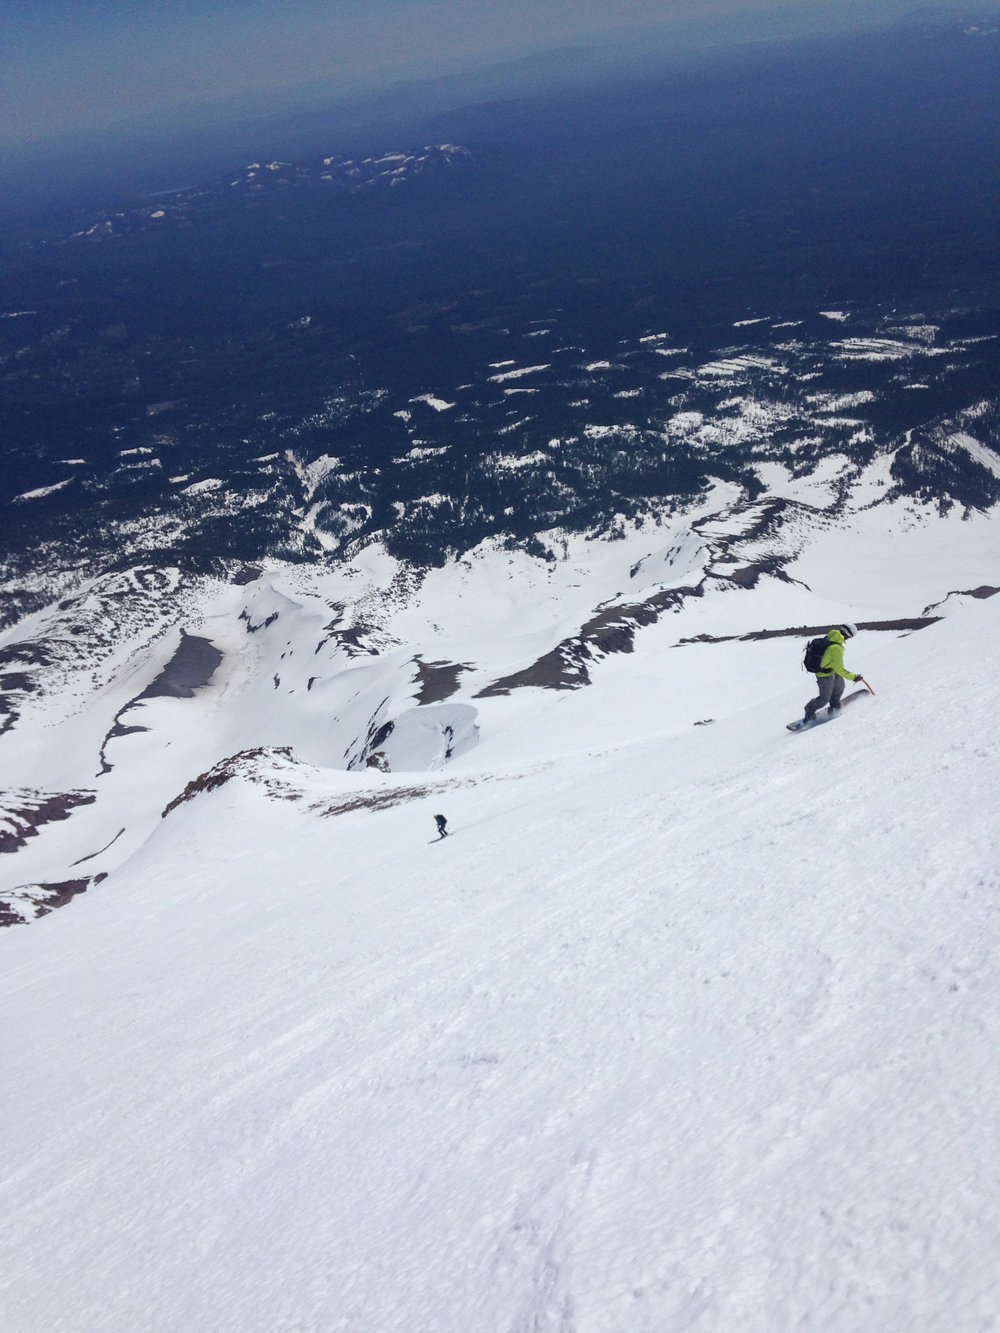 IAG/SMG Guide Ryan on a Shasta Ski Mission. Photo Credit: Ryan Sorenson